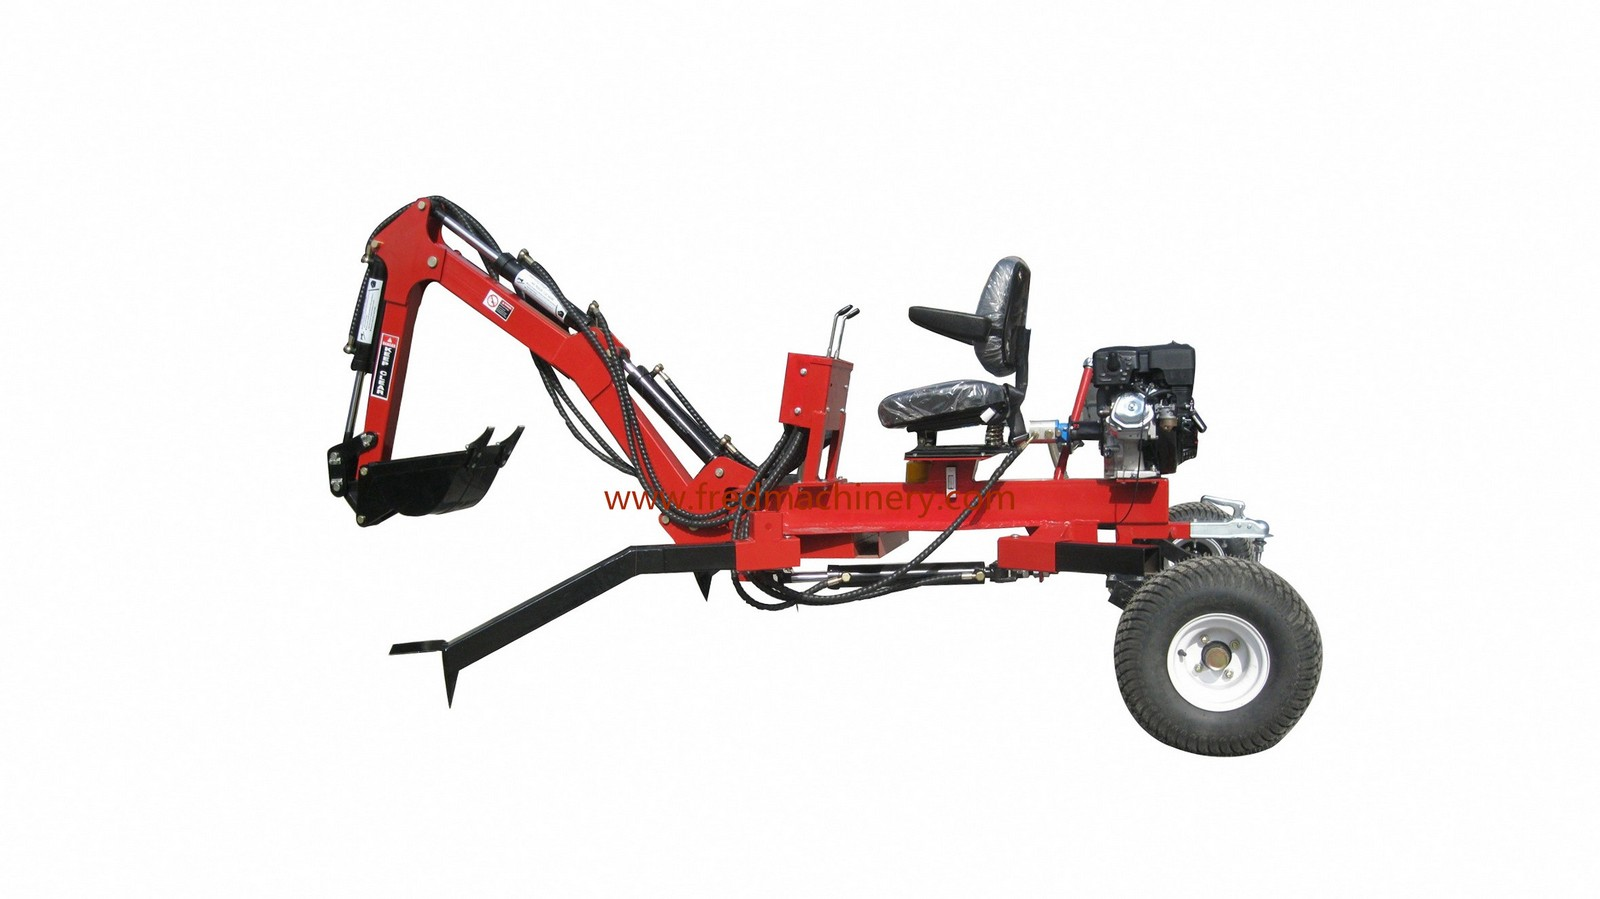 ATV Backhoe Digger